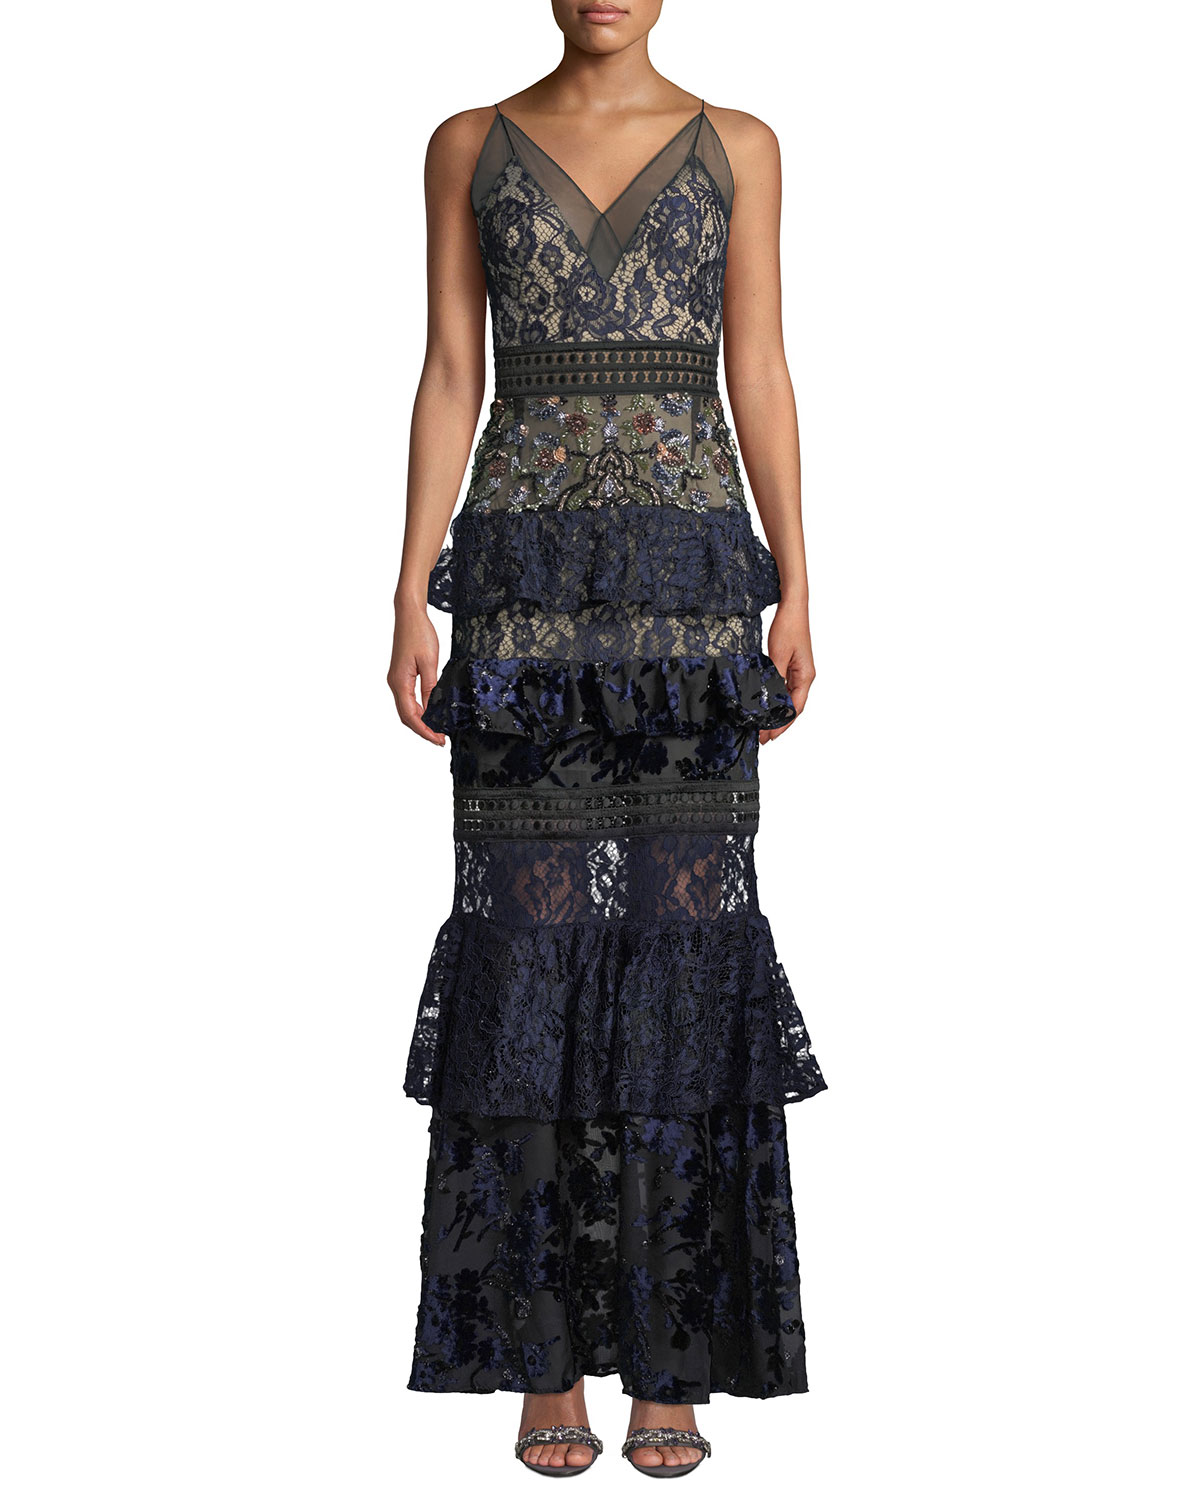 PATBO PATRICIA BONALDI Tiered Lace And Velvet Floral-Beaded Gown in Blue